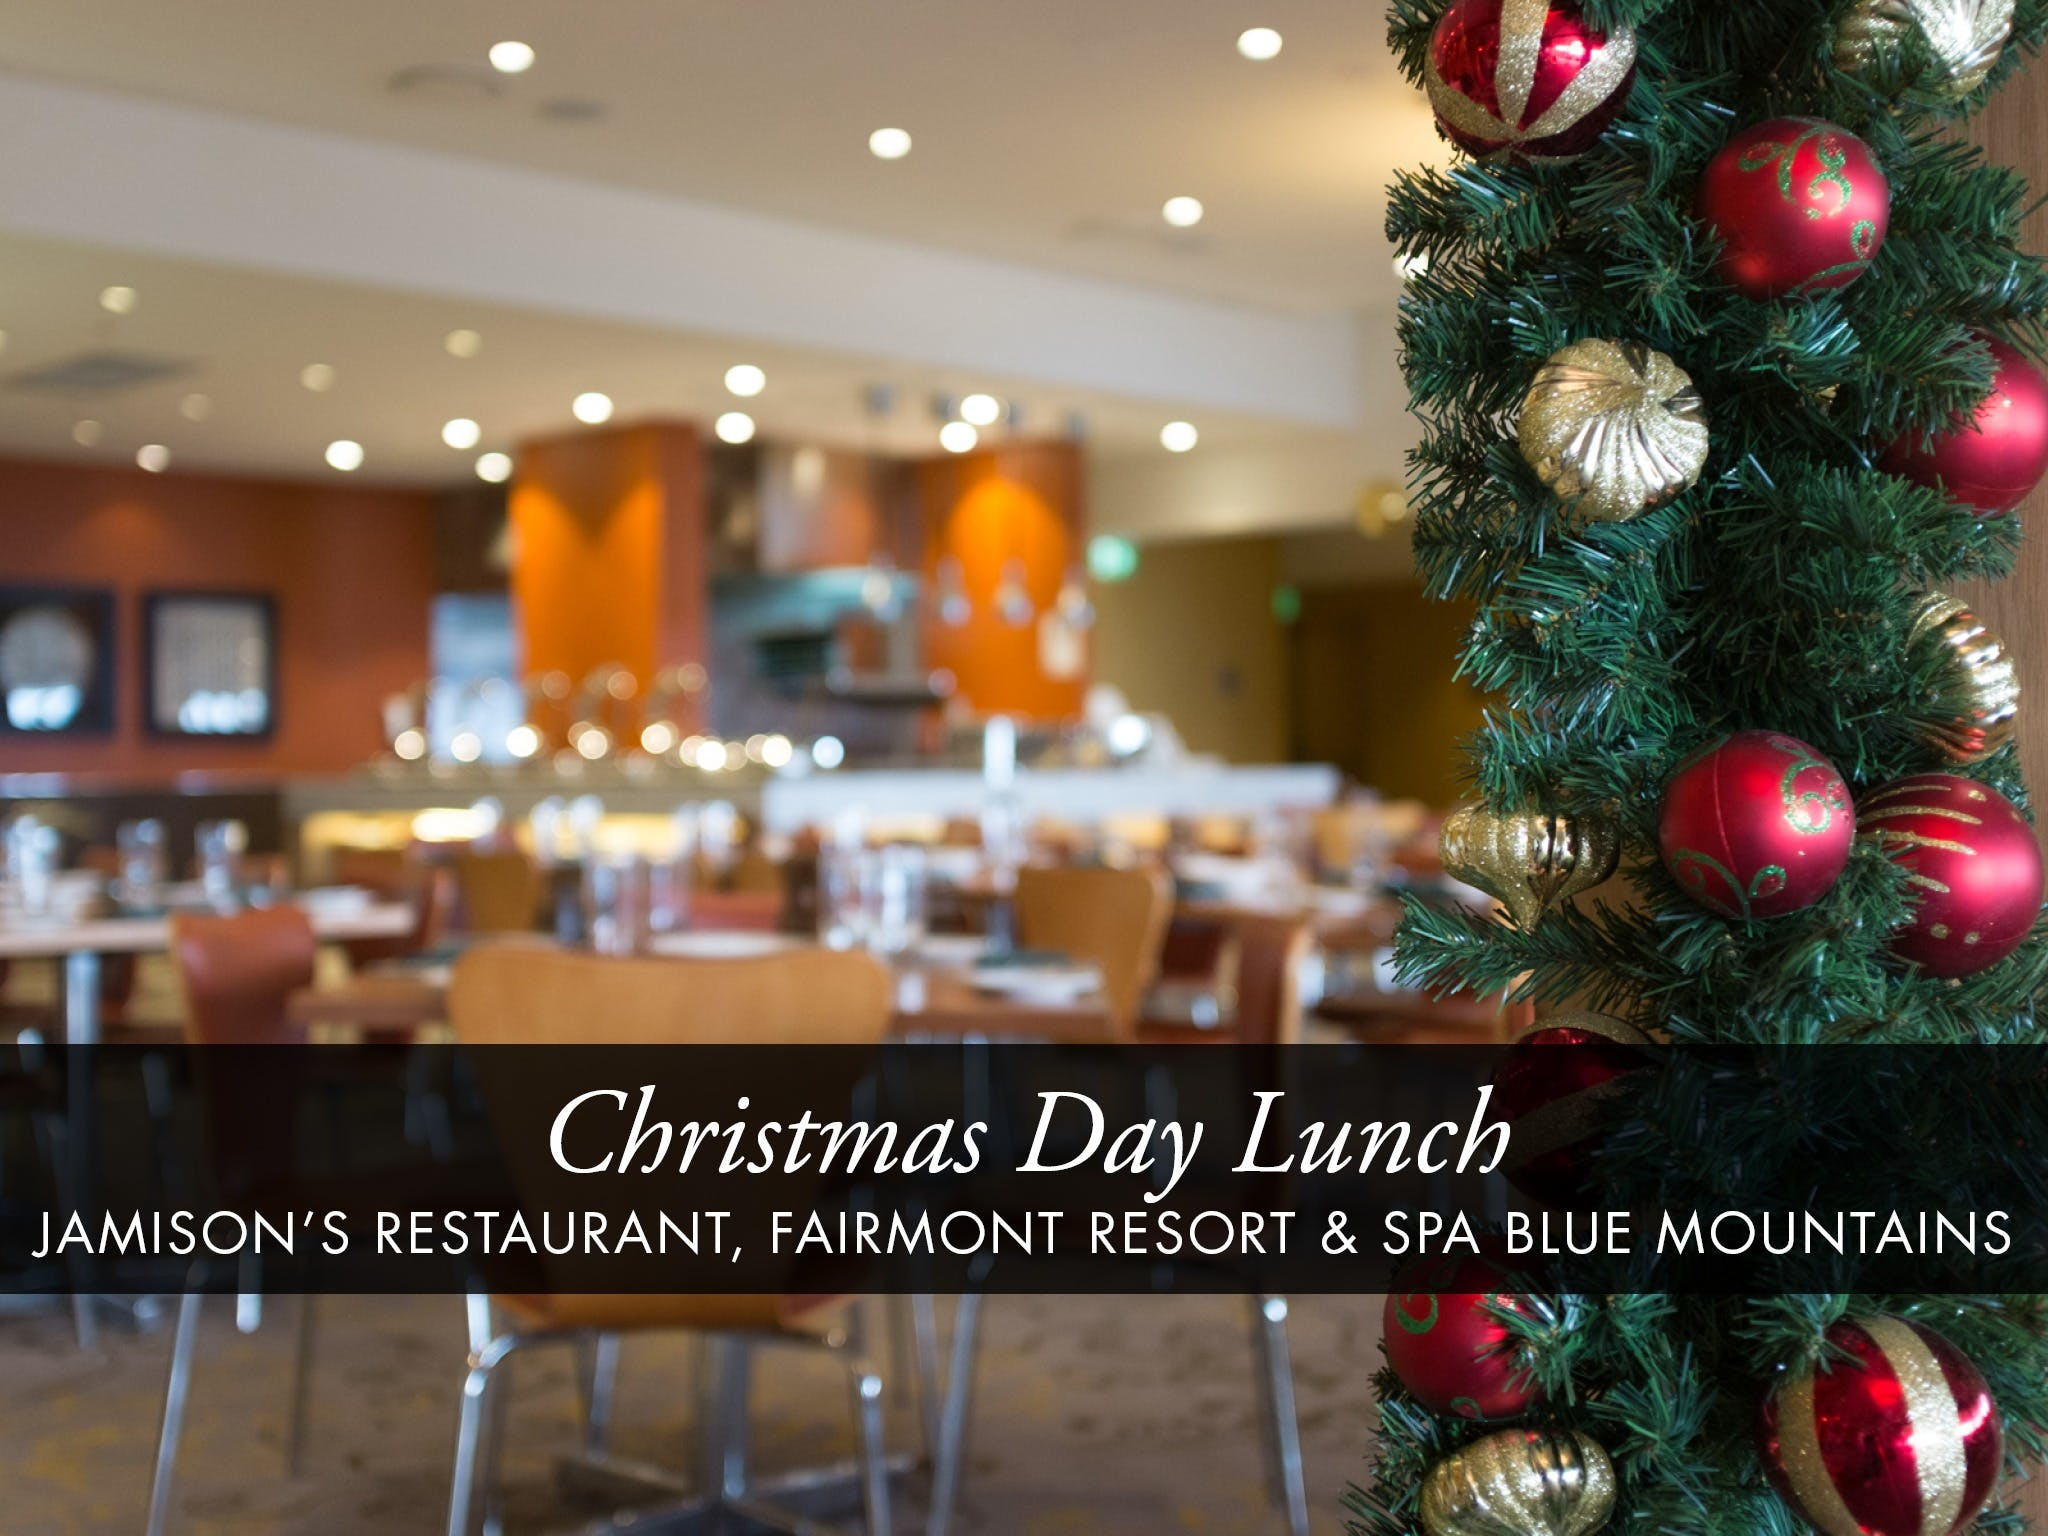 Christmas Day Buffet Lunch at Jamison's Restaurant - Accommodation Tasmania